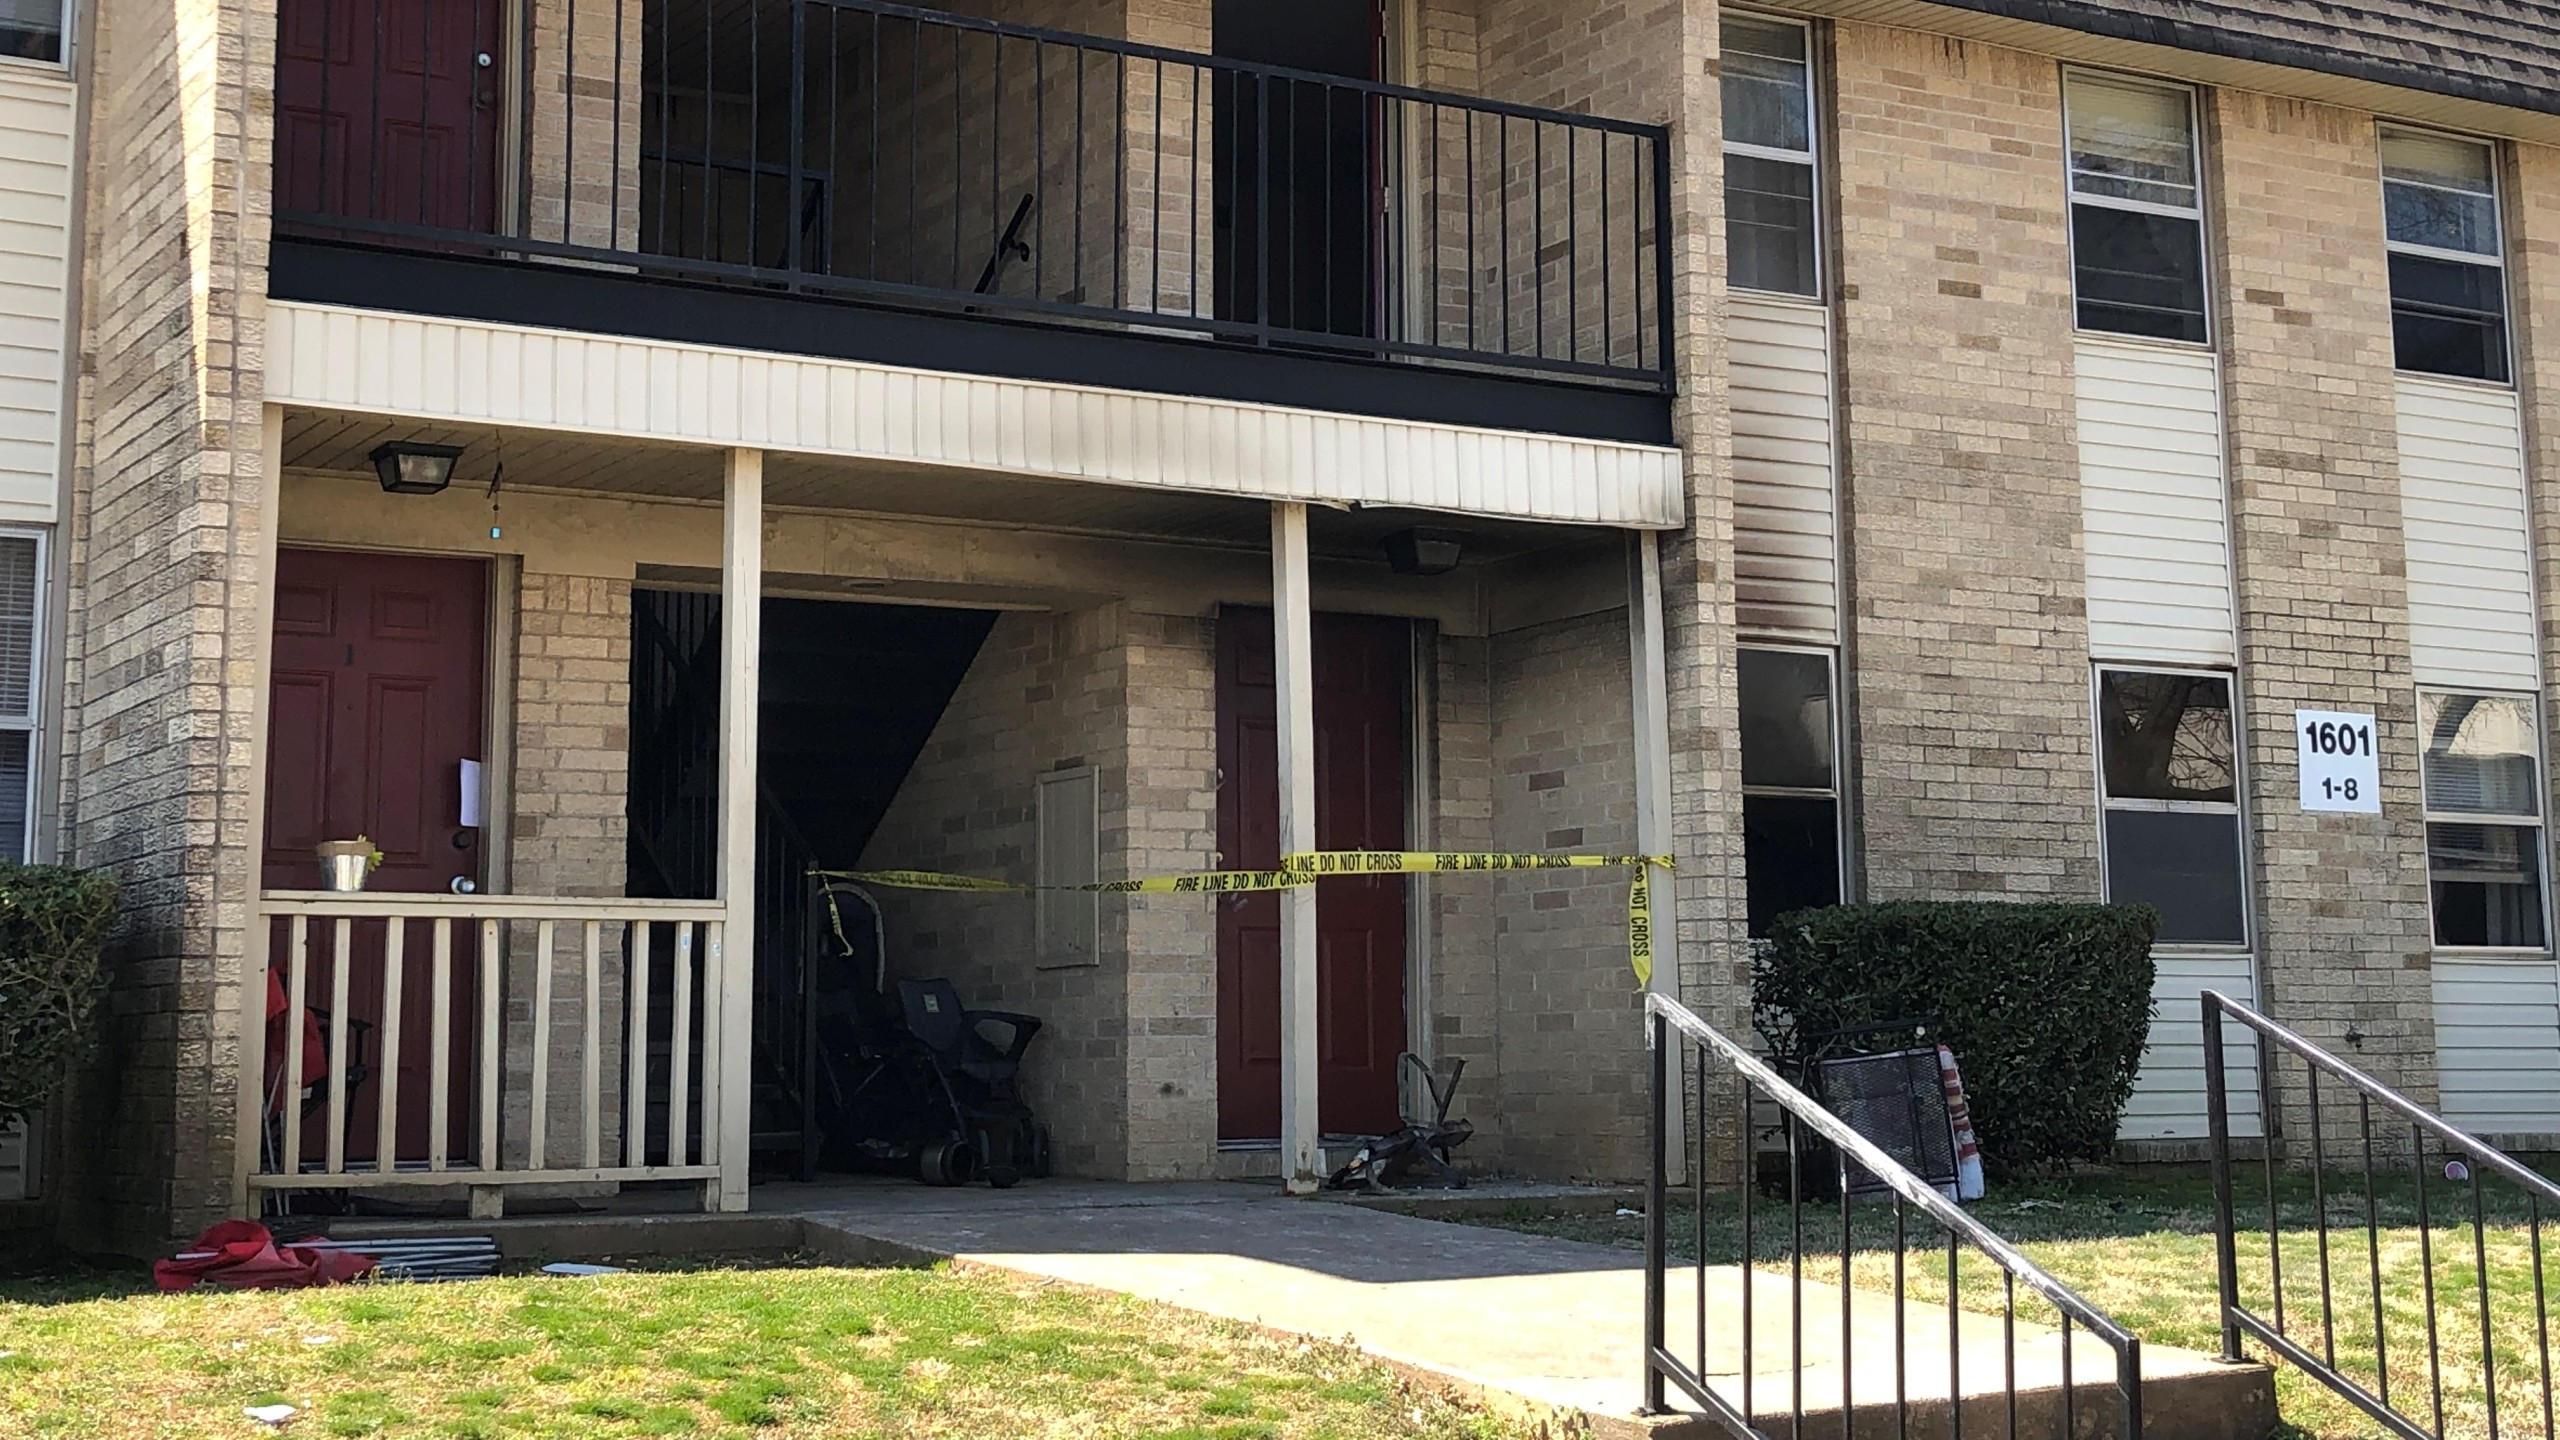 Van Buren Deadly Apartment Fire -  Web